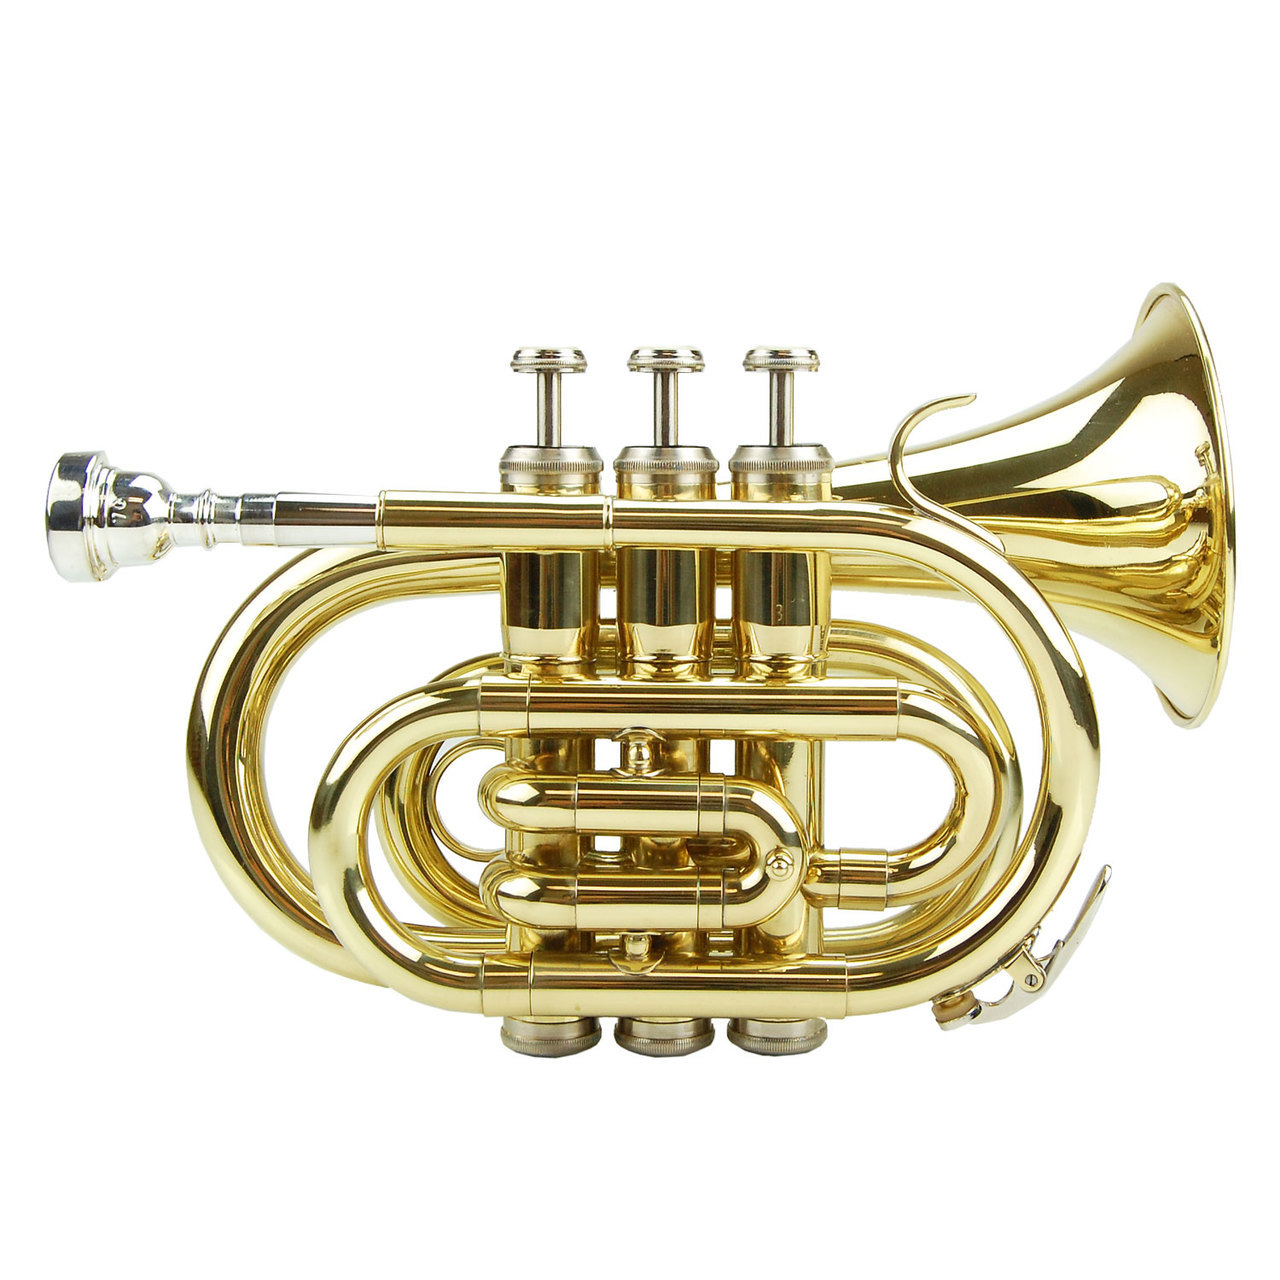 Merano B Flat Gold Brass Pocket Trumpet